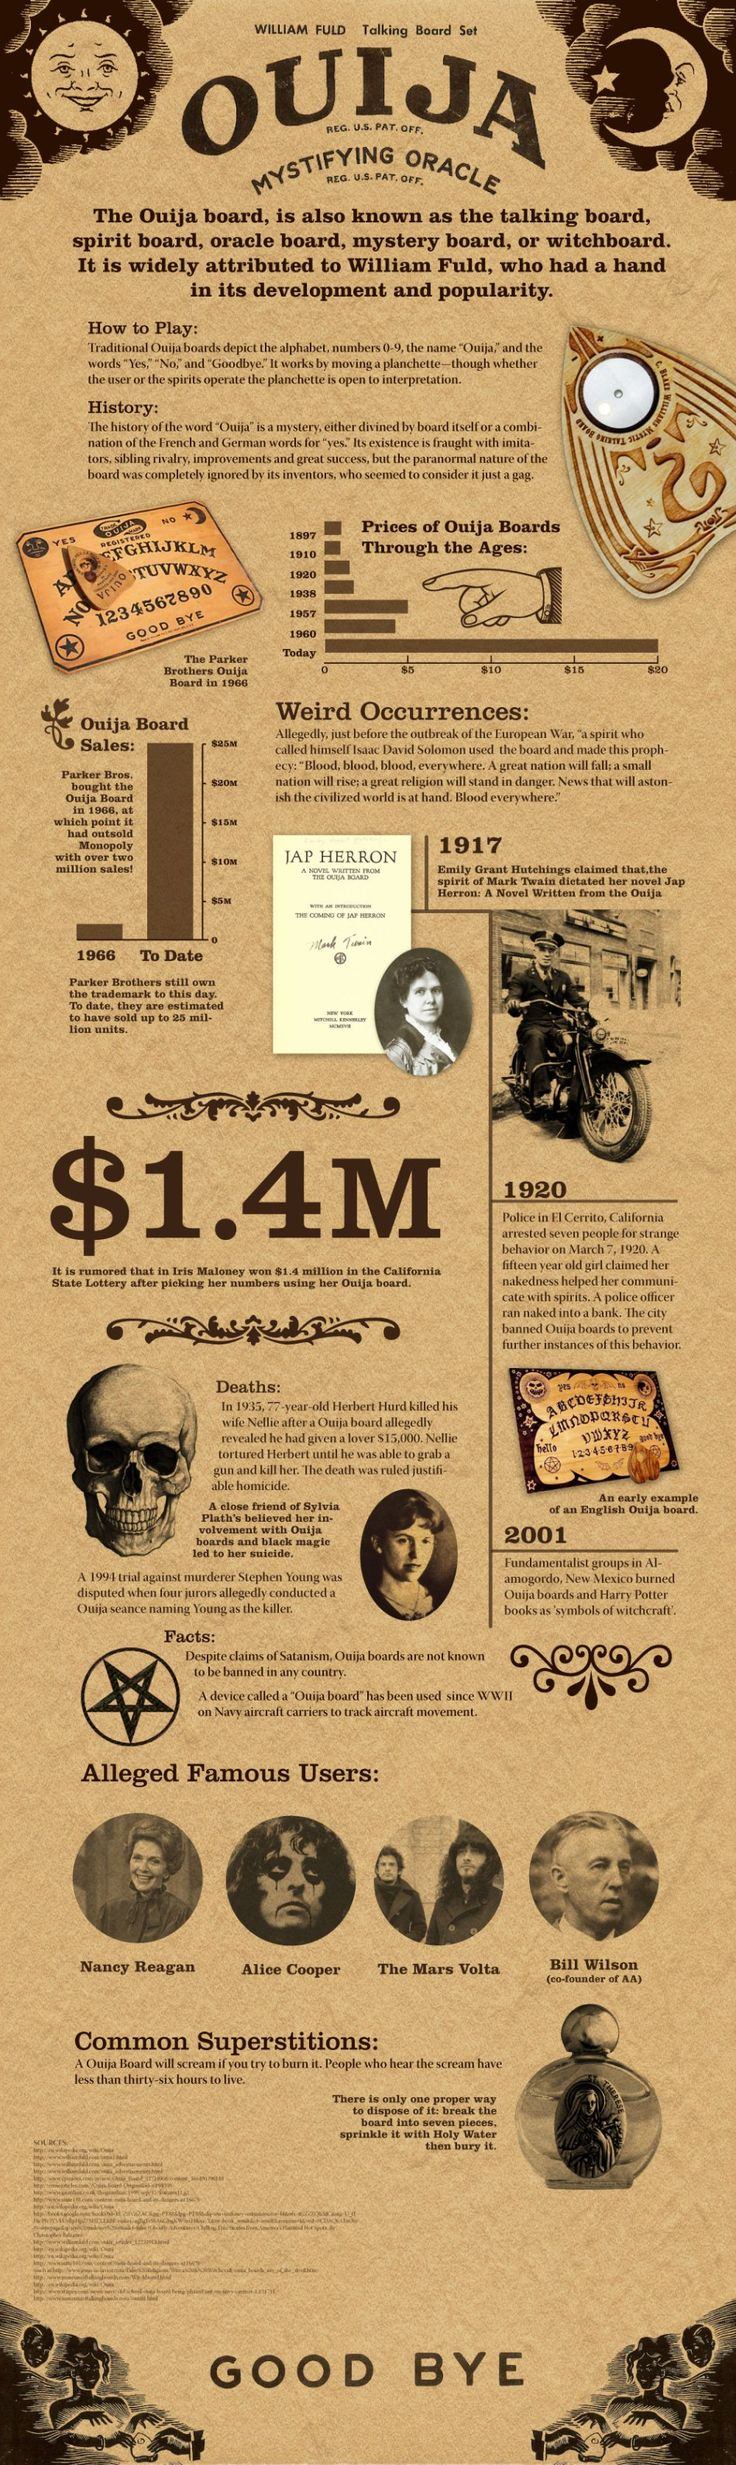 Ouija Board Infographic. Be careful playing with a used one you don't know the owner of. Make your own for Goddess sake.